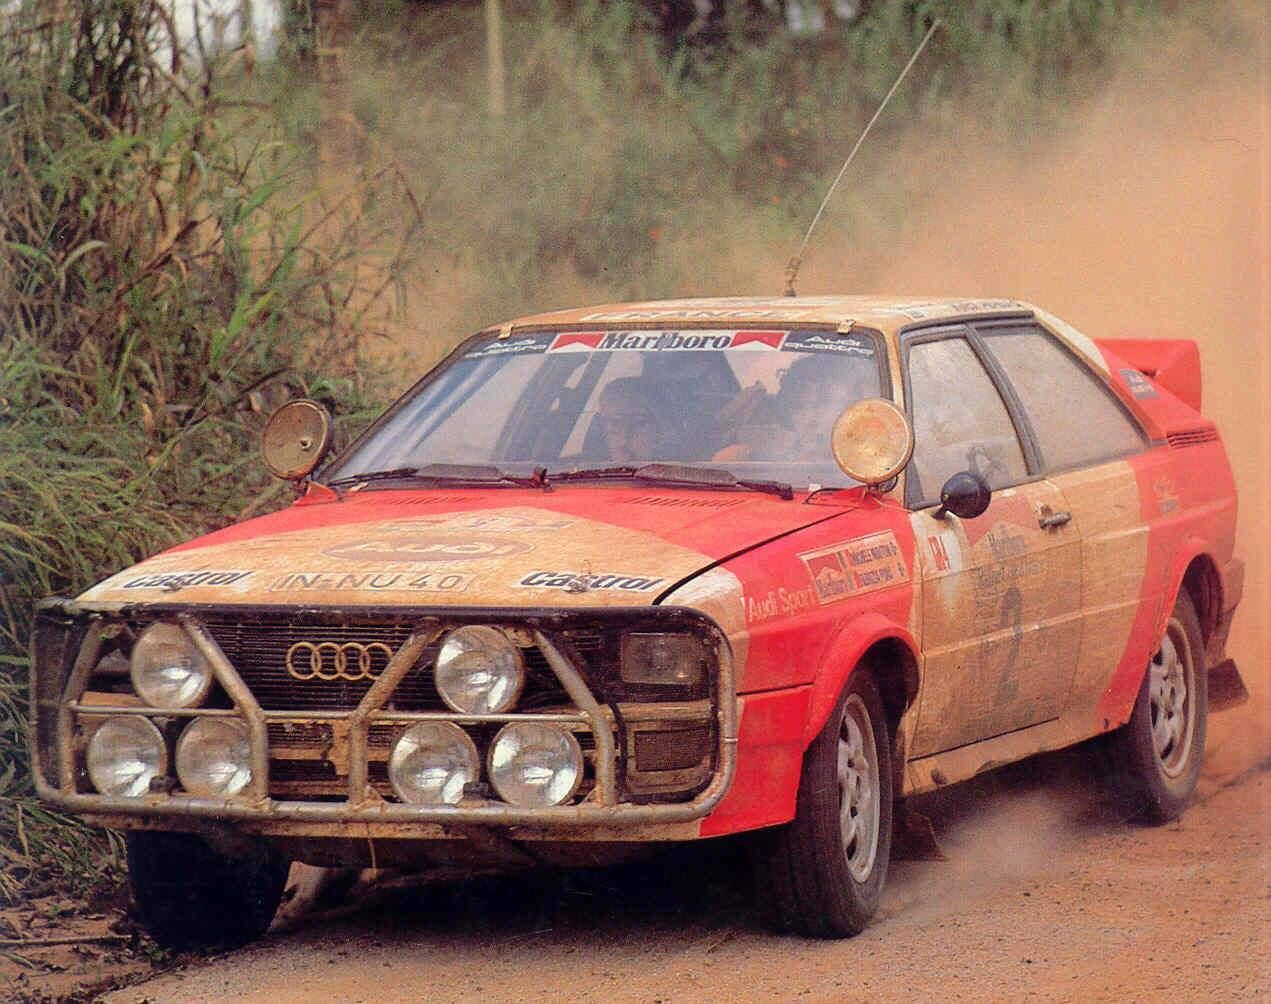 Ari vatanen 1000 lakes rally 1988 airborne pinterest e30 wheels and rally car